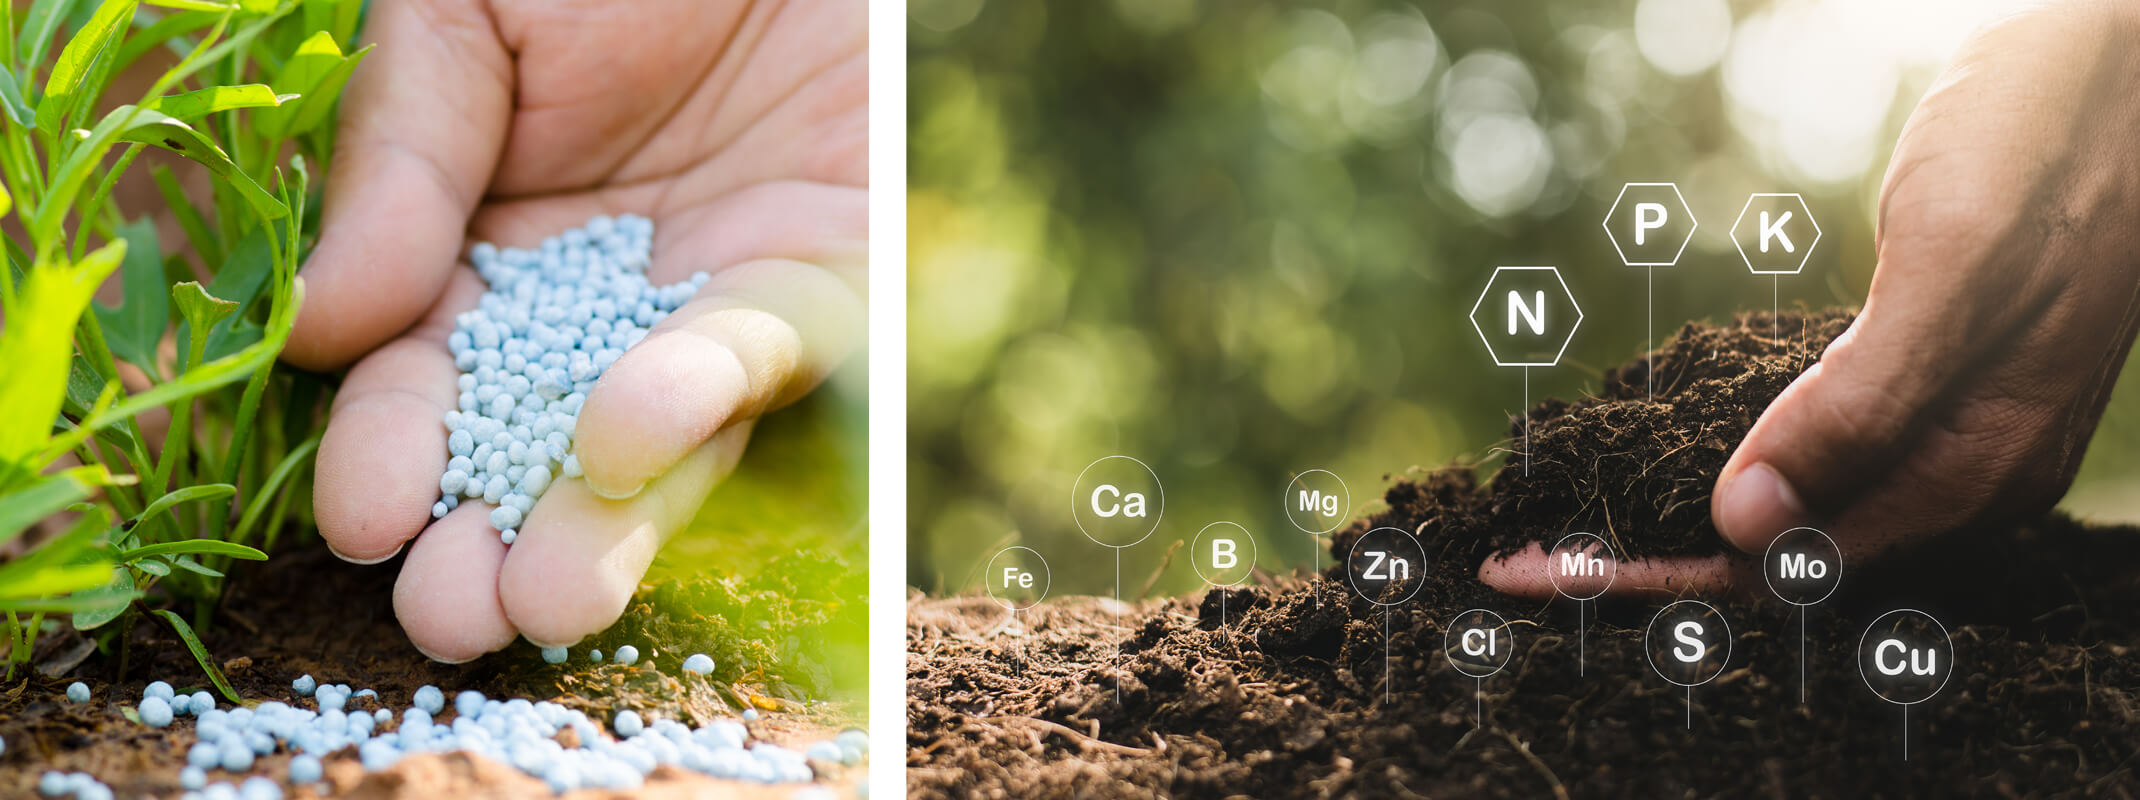 2 images of a person pouring fertilizer onto the dirt in the garden and a second image of a hand holding up dirt in the garden with elements of the soil, showing all around